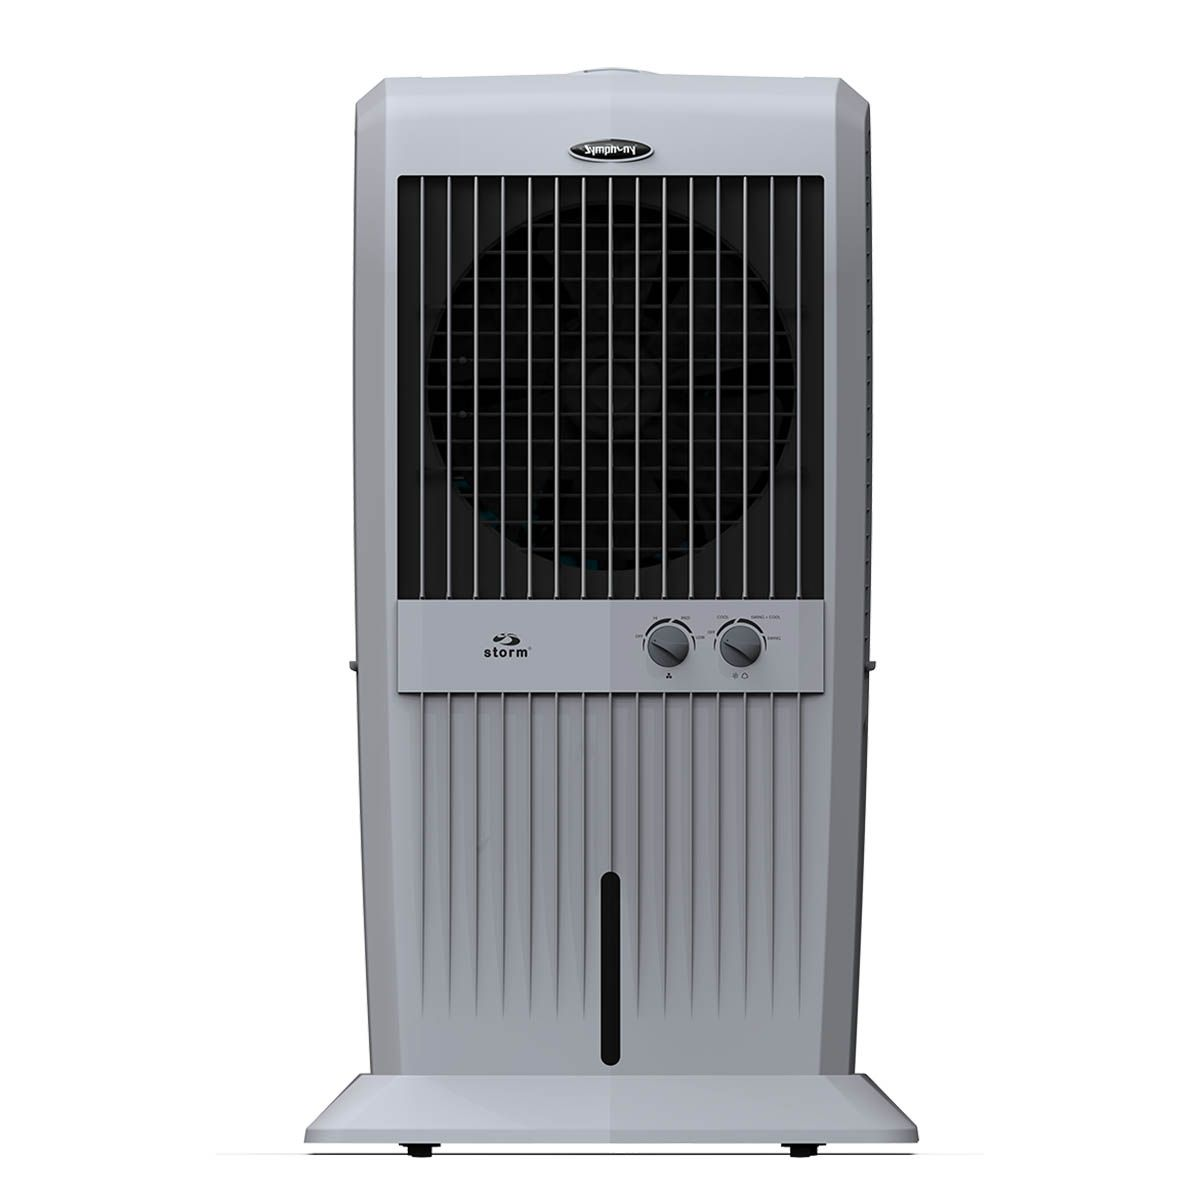 Symphony Storm 70 XL Desert Tower Air Cooler 70-litres with Multistage Air Purification